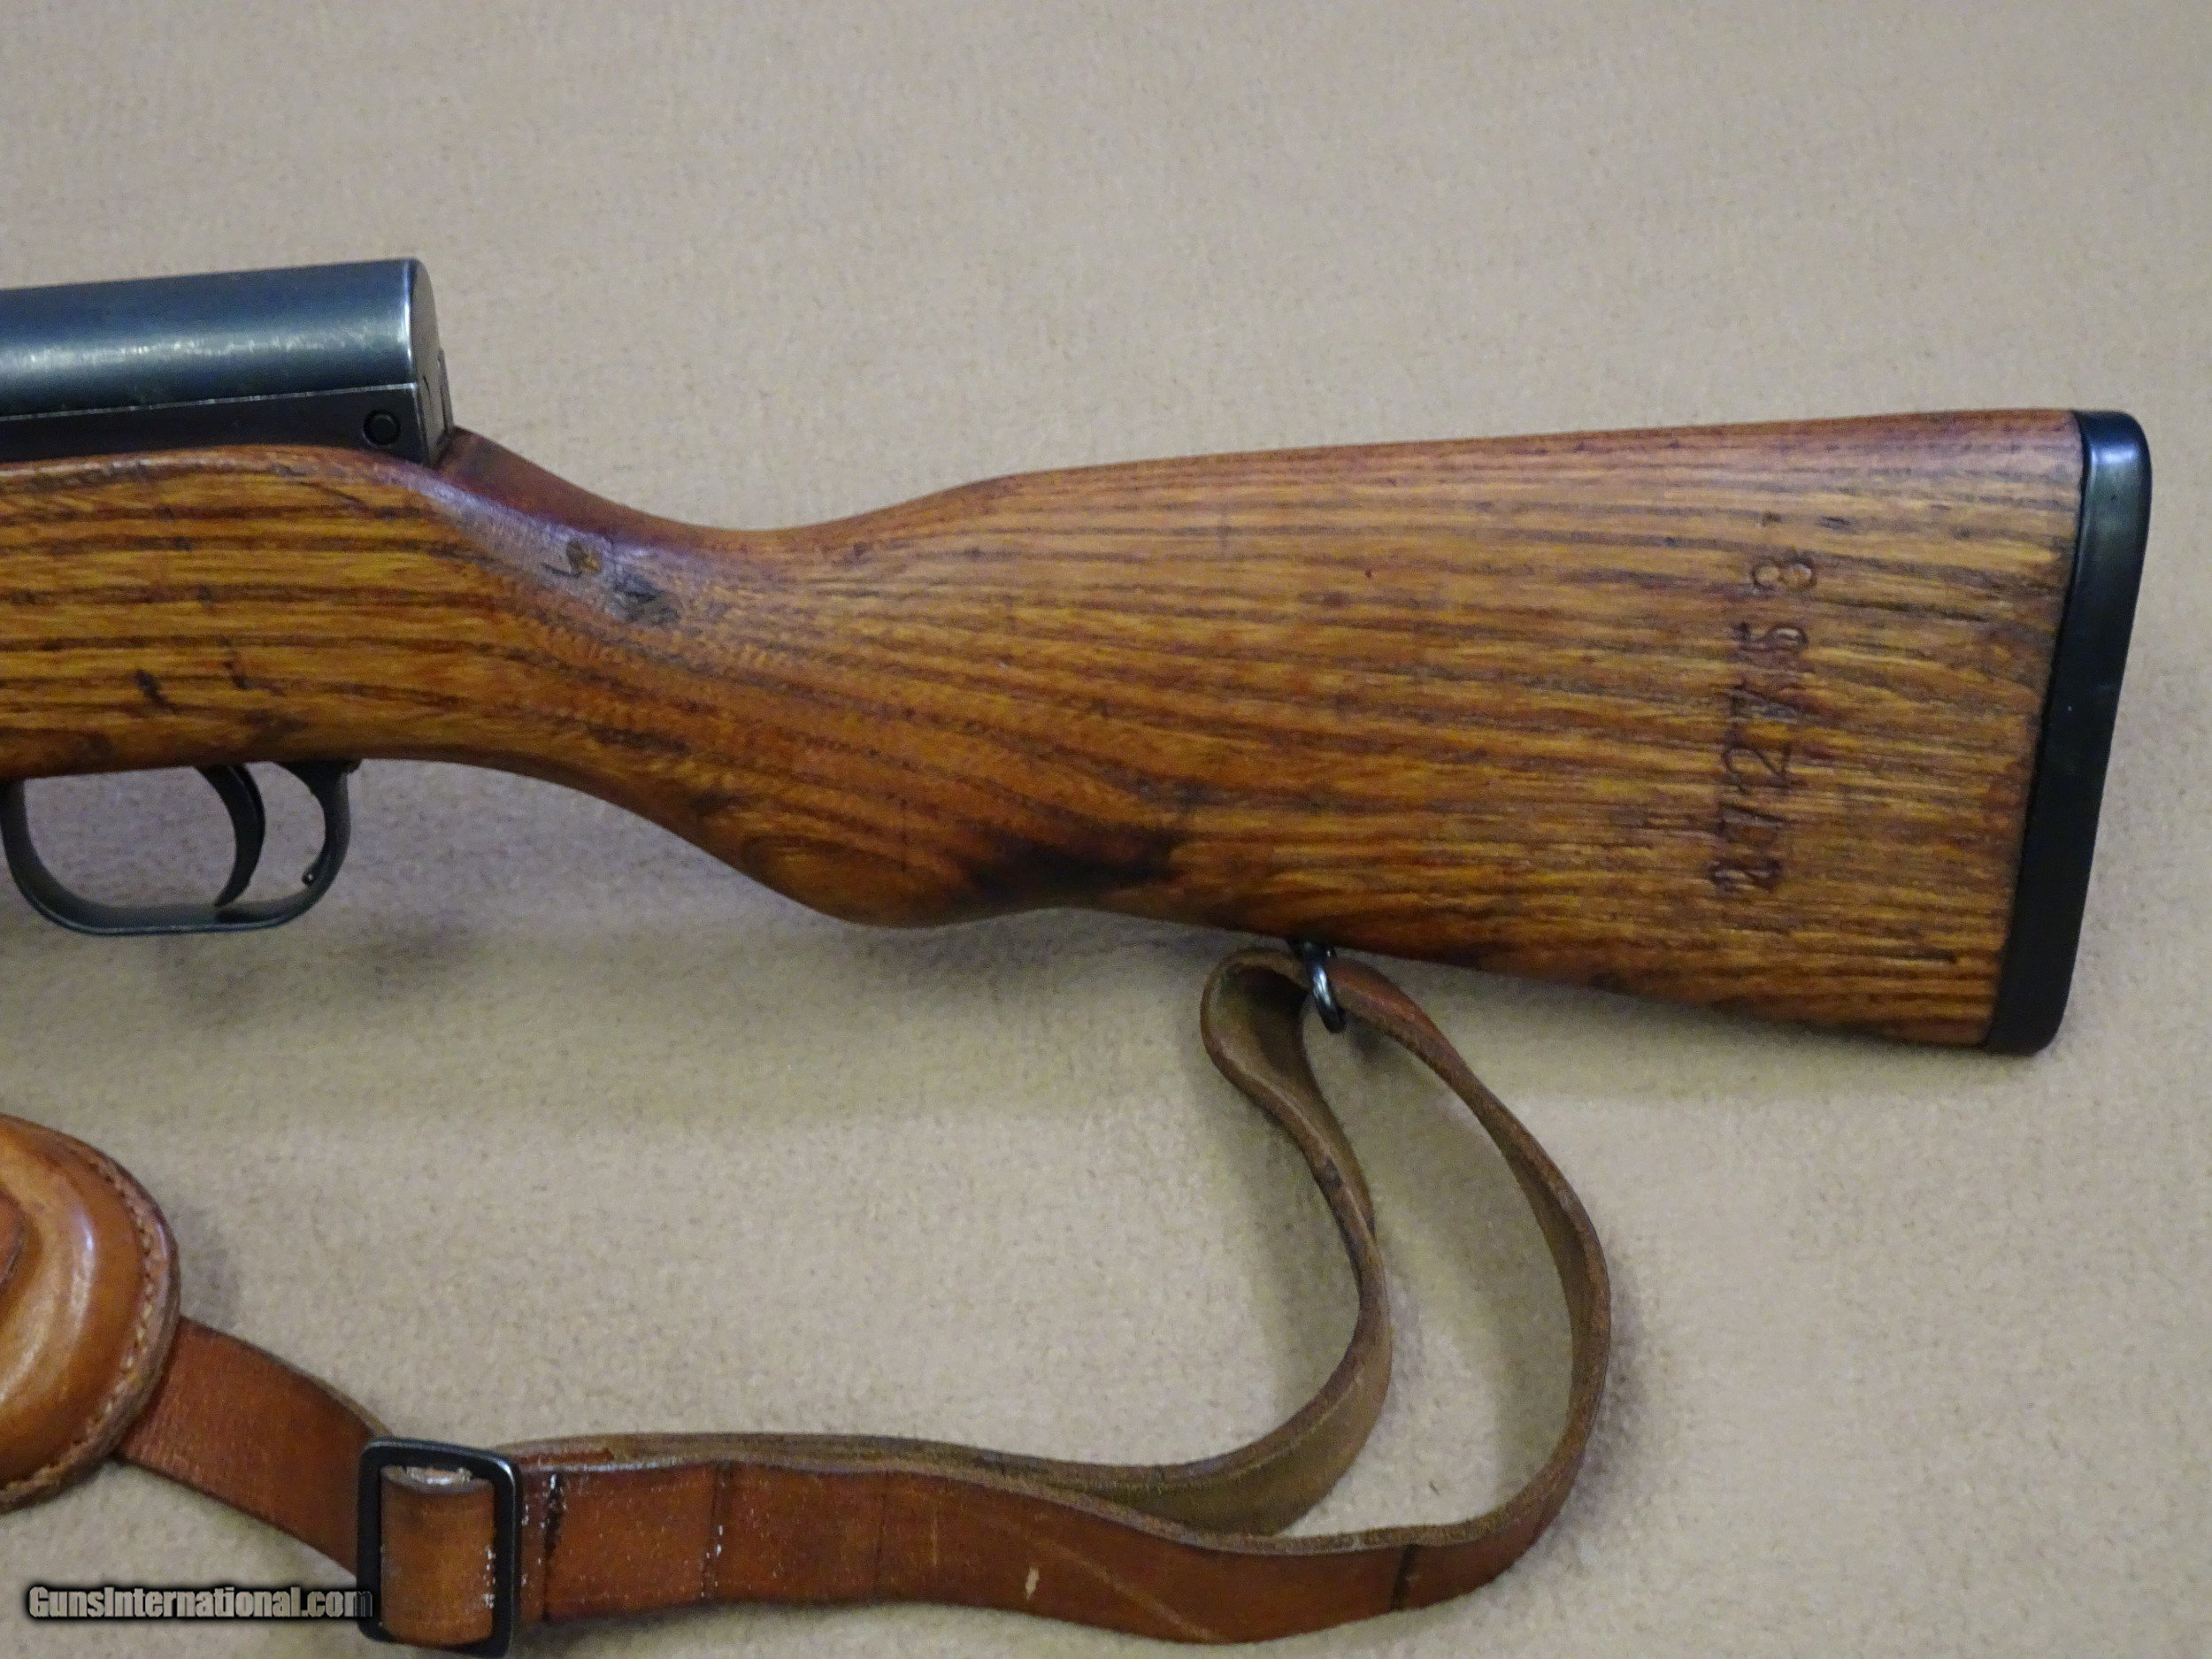 All-Matching Yugo Model 59/66 SKS in 7 62x39 Caliber